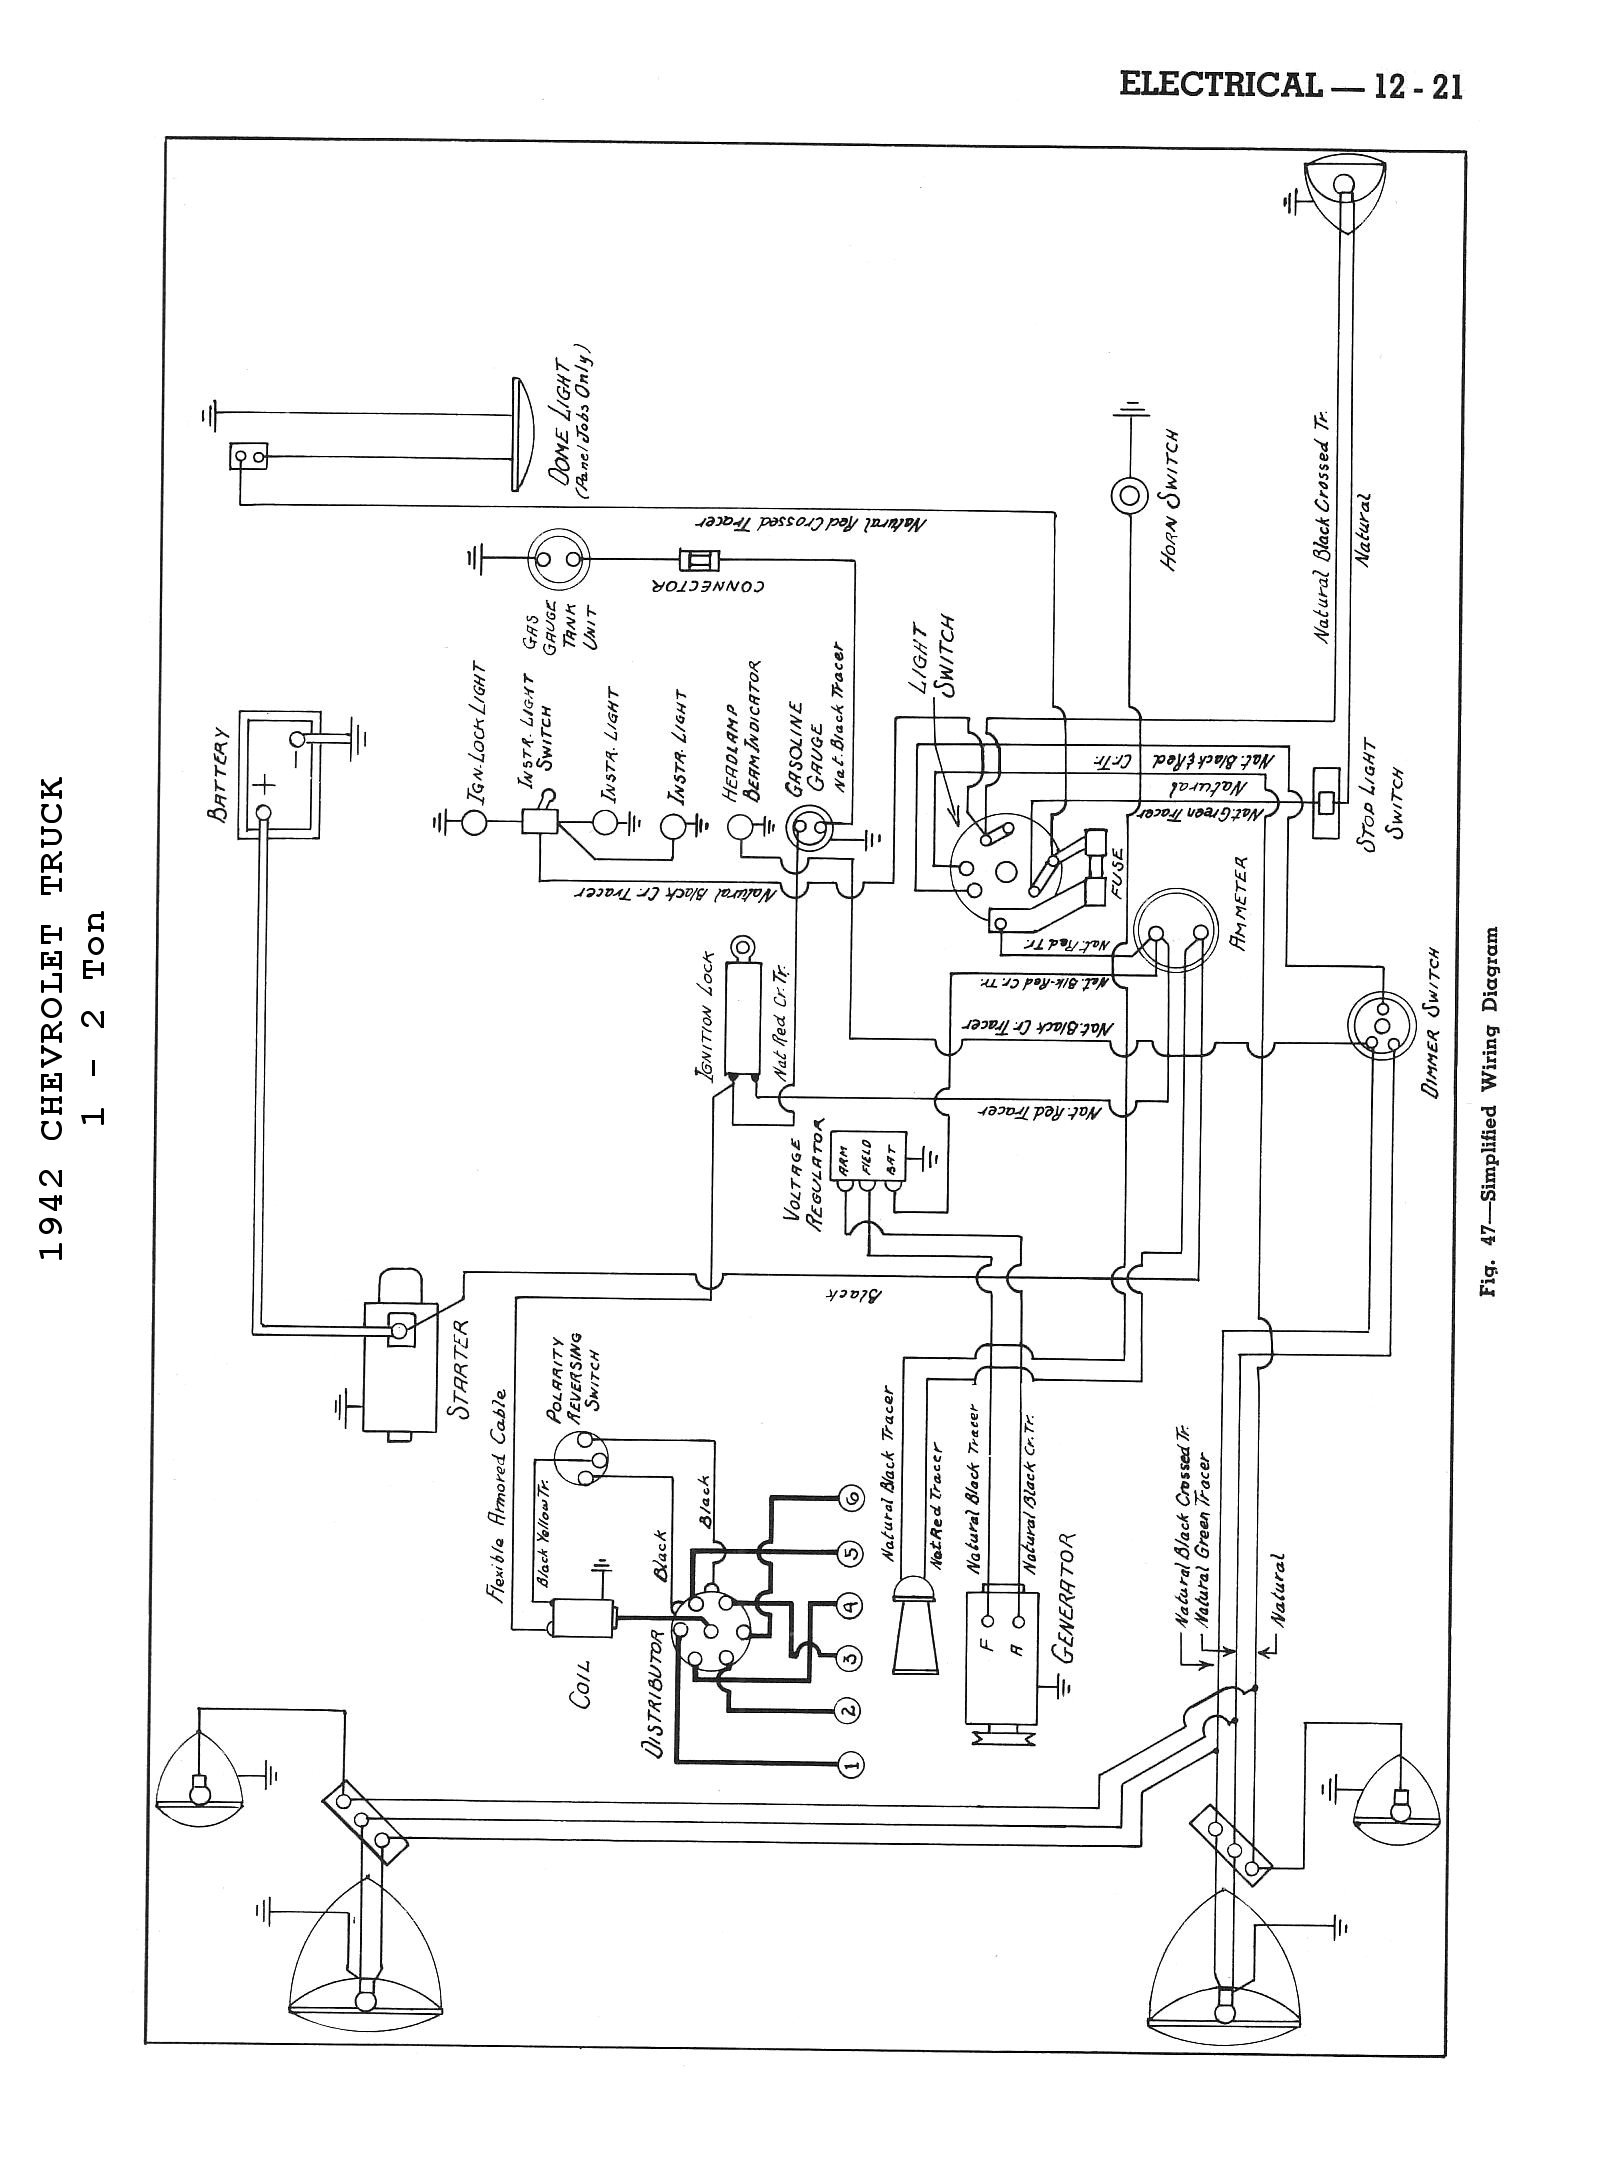 42cm4x2t1221 cm wiring diagram cm hoist wiring diagram \u2022 wiring diagrams j boston subsat 6 wiring diagram at panicattacktreatment.co